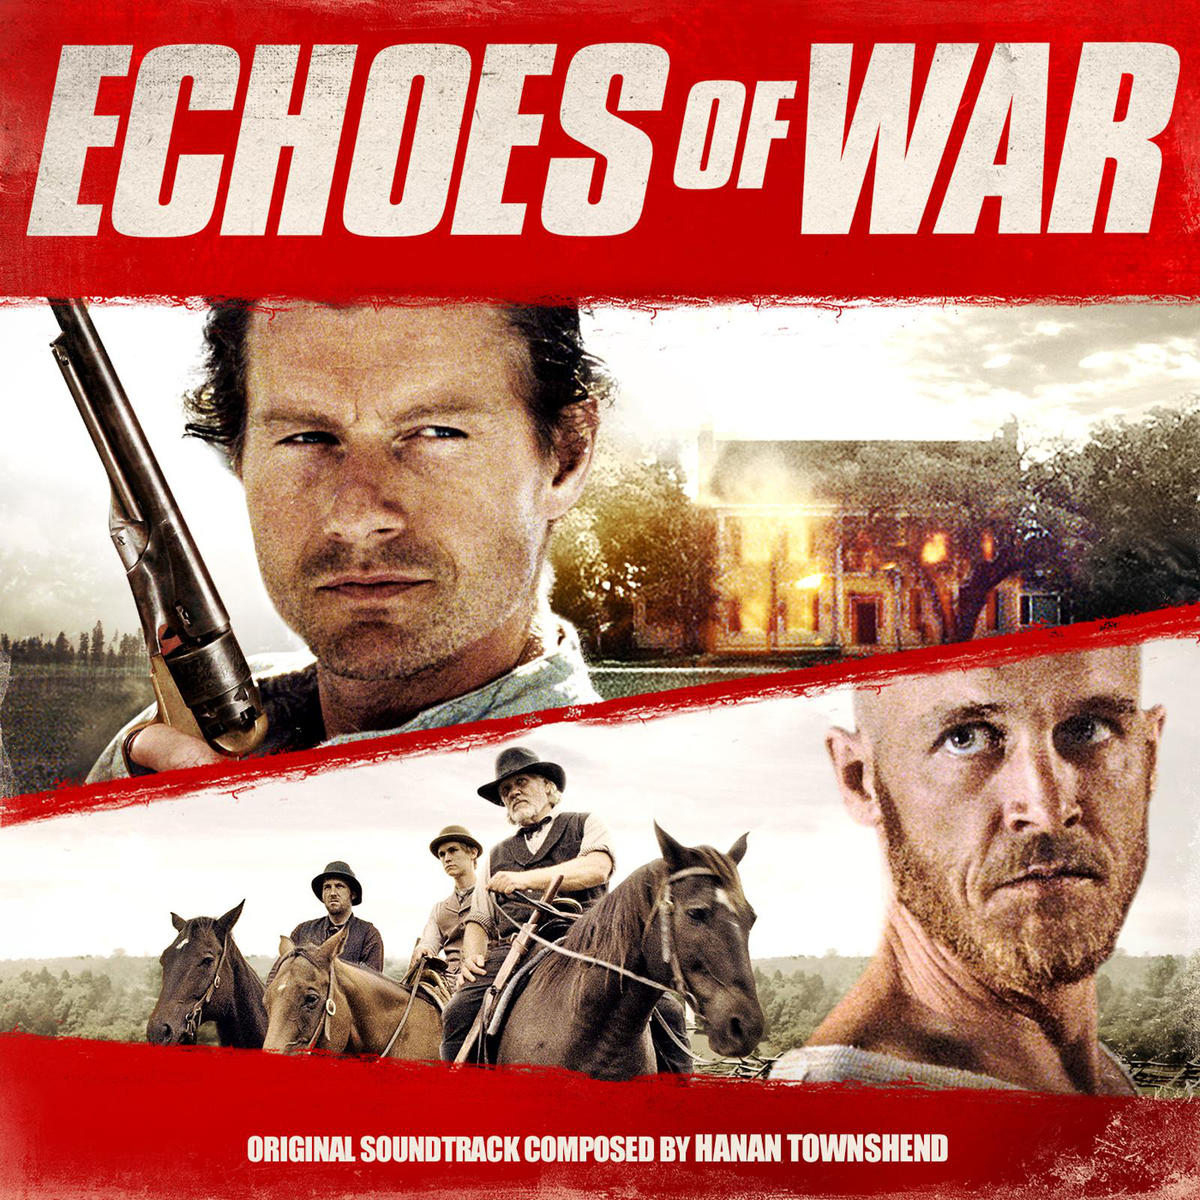 war film genre essay Matthew jaskot english 102-7 9:30 am avodian september 20, 2012 war from the beginning war films have been around for quite some time they have many.